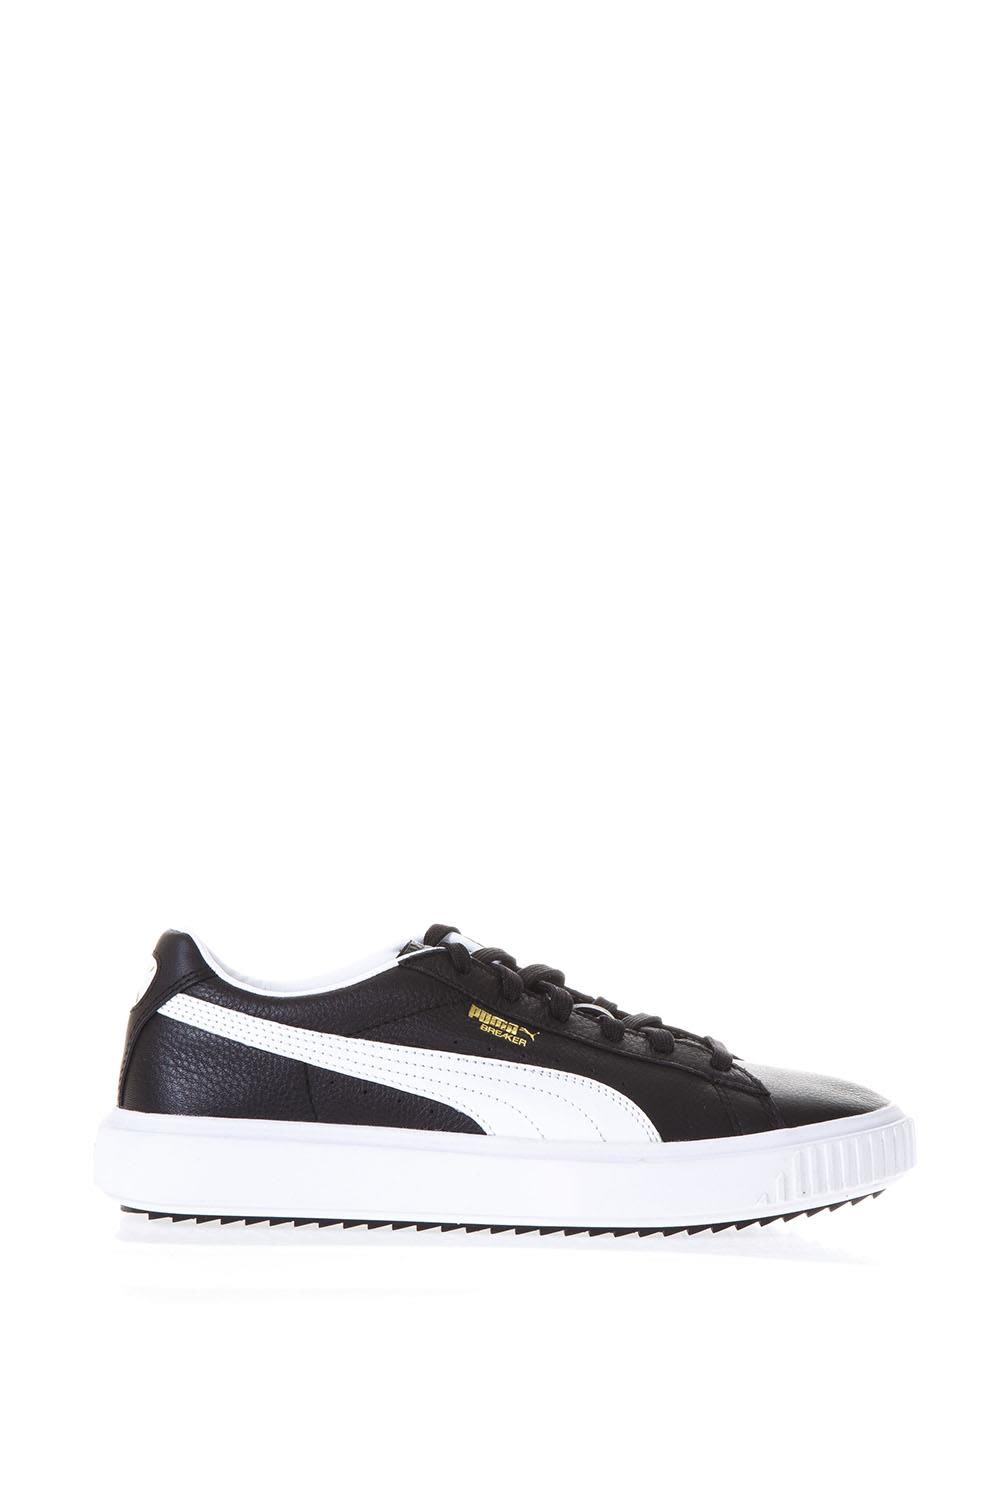 Puma Select Breaker Black Leather Sneakers